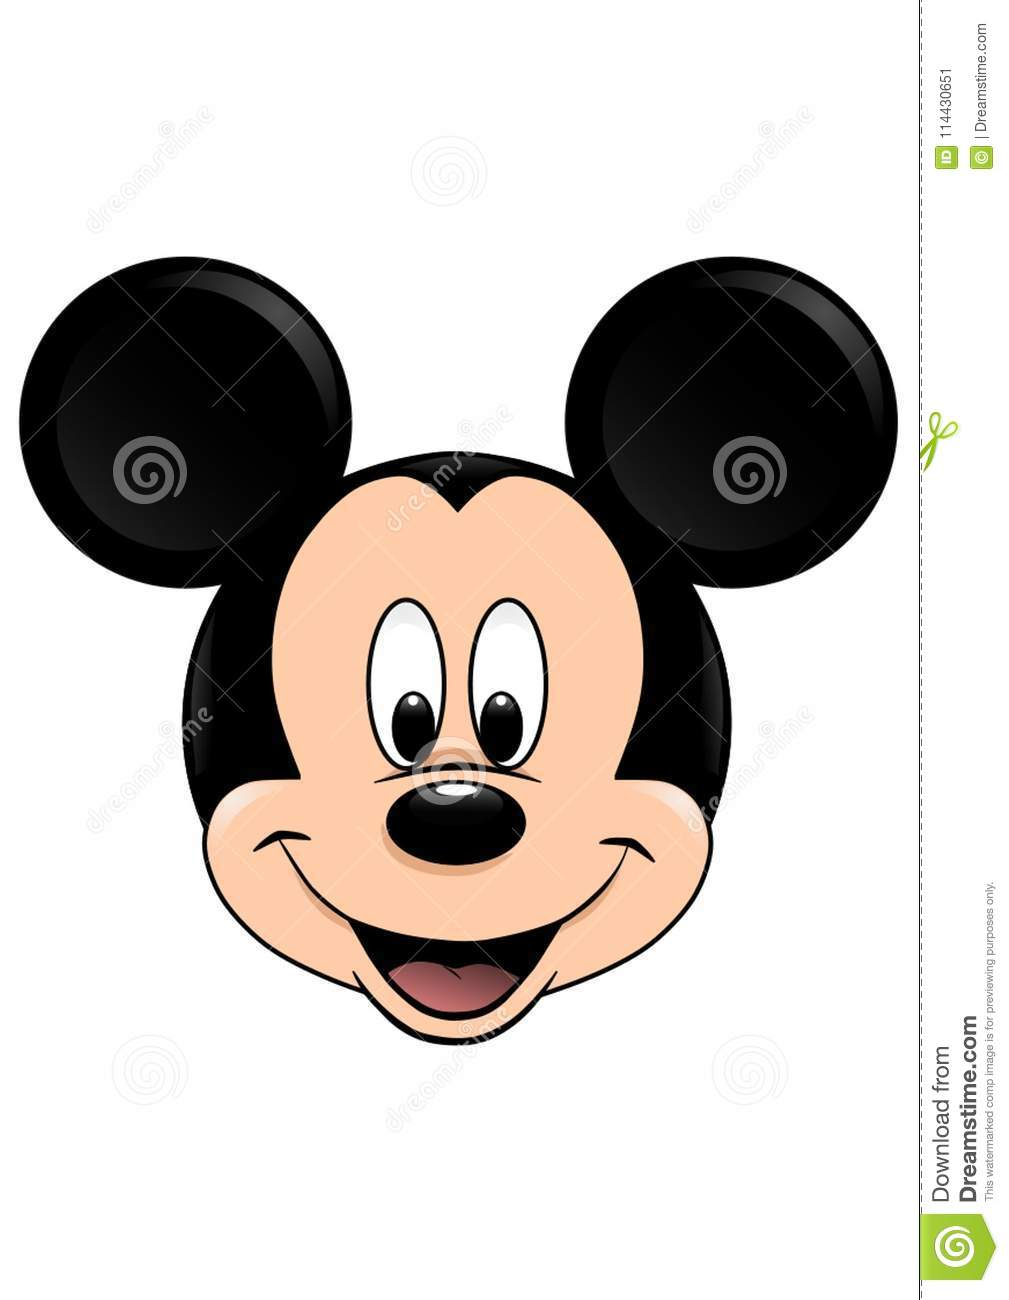 Close Up Characters Cartoon 01 : Mouse cartoons illustrations vector stock images